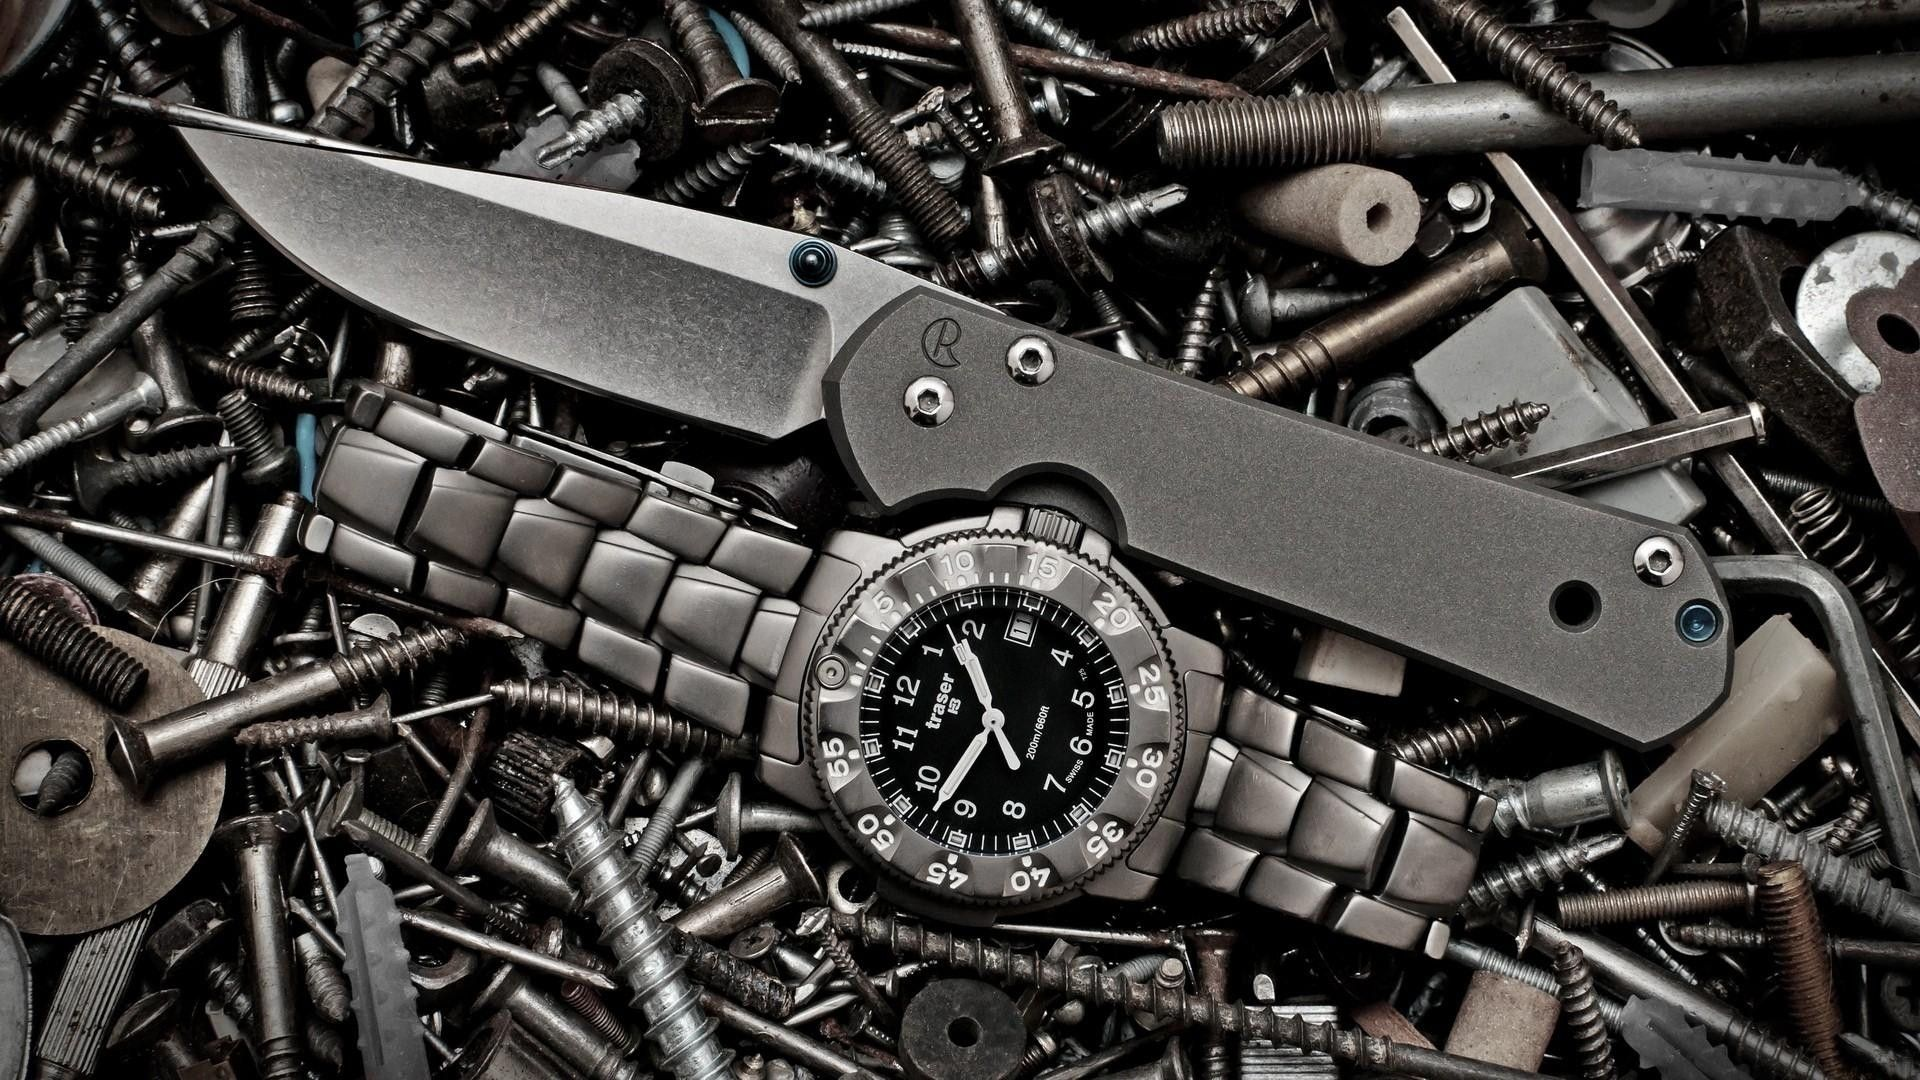 Black Knife and Watch High Quality Photo Guns wallpaper